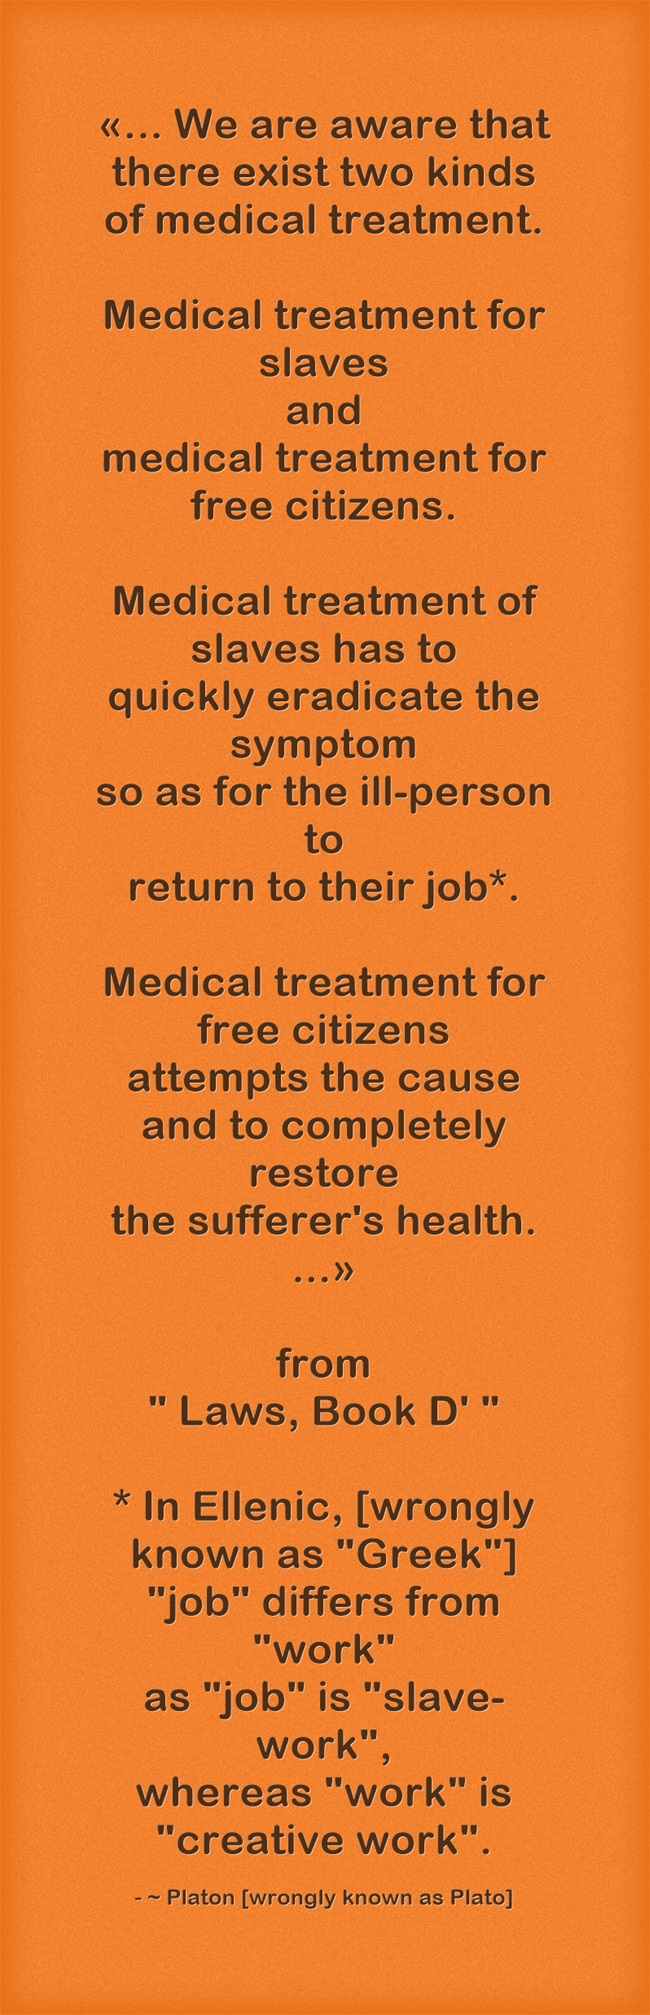 Platon - We are aware that there exist two kinds of medical treatment ... slaves=eradicate symptom, return to job AND free citizens=attempt cause, fully restore health. orange